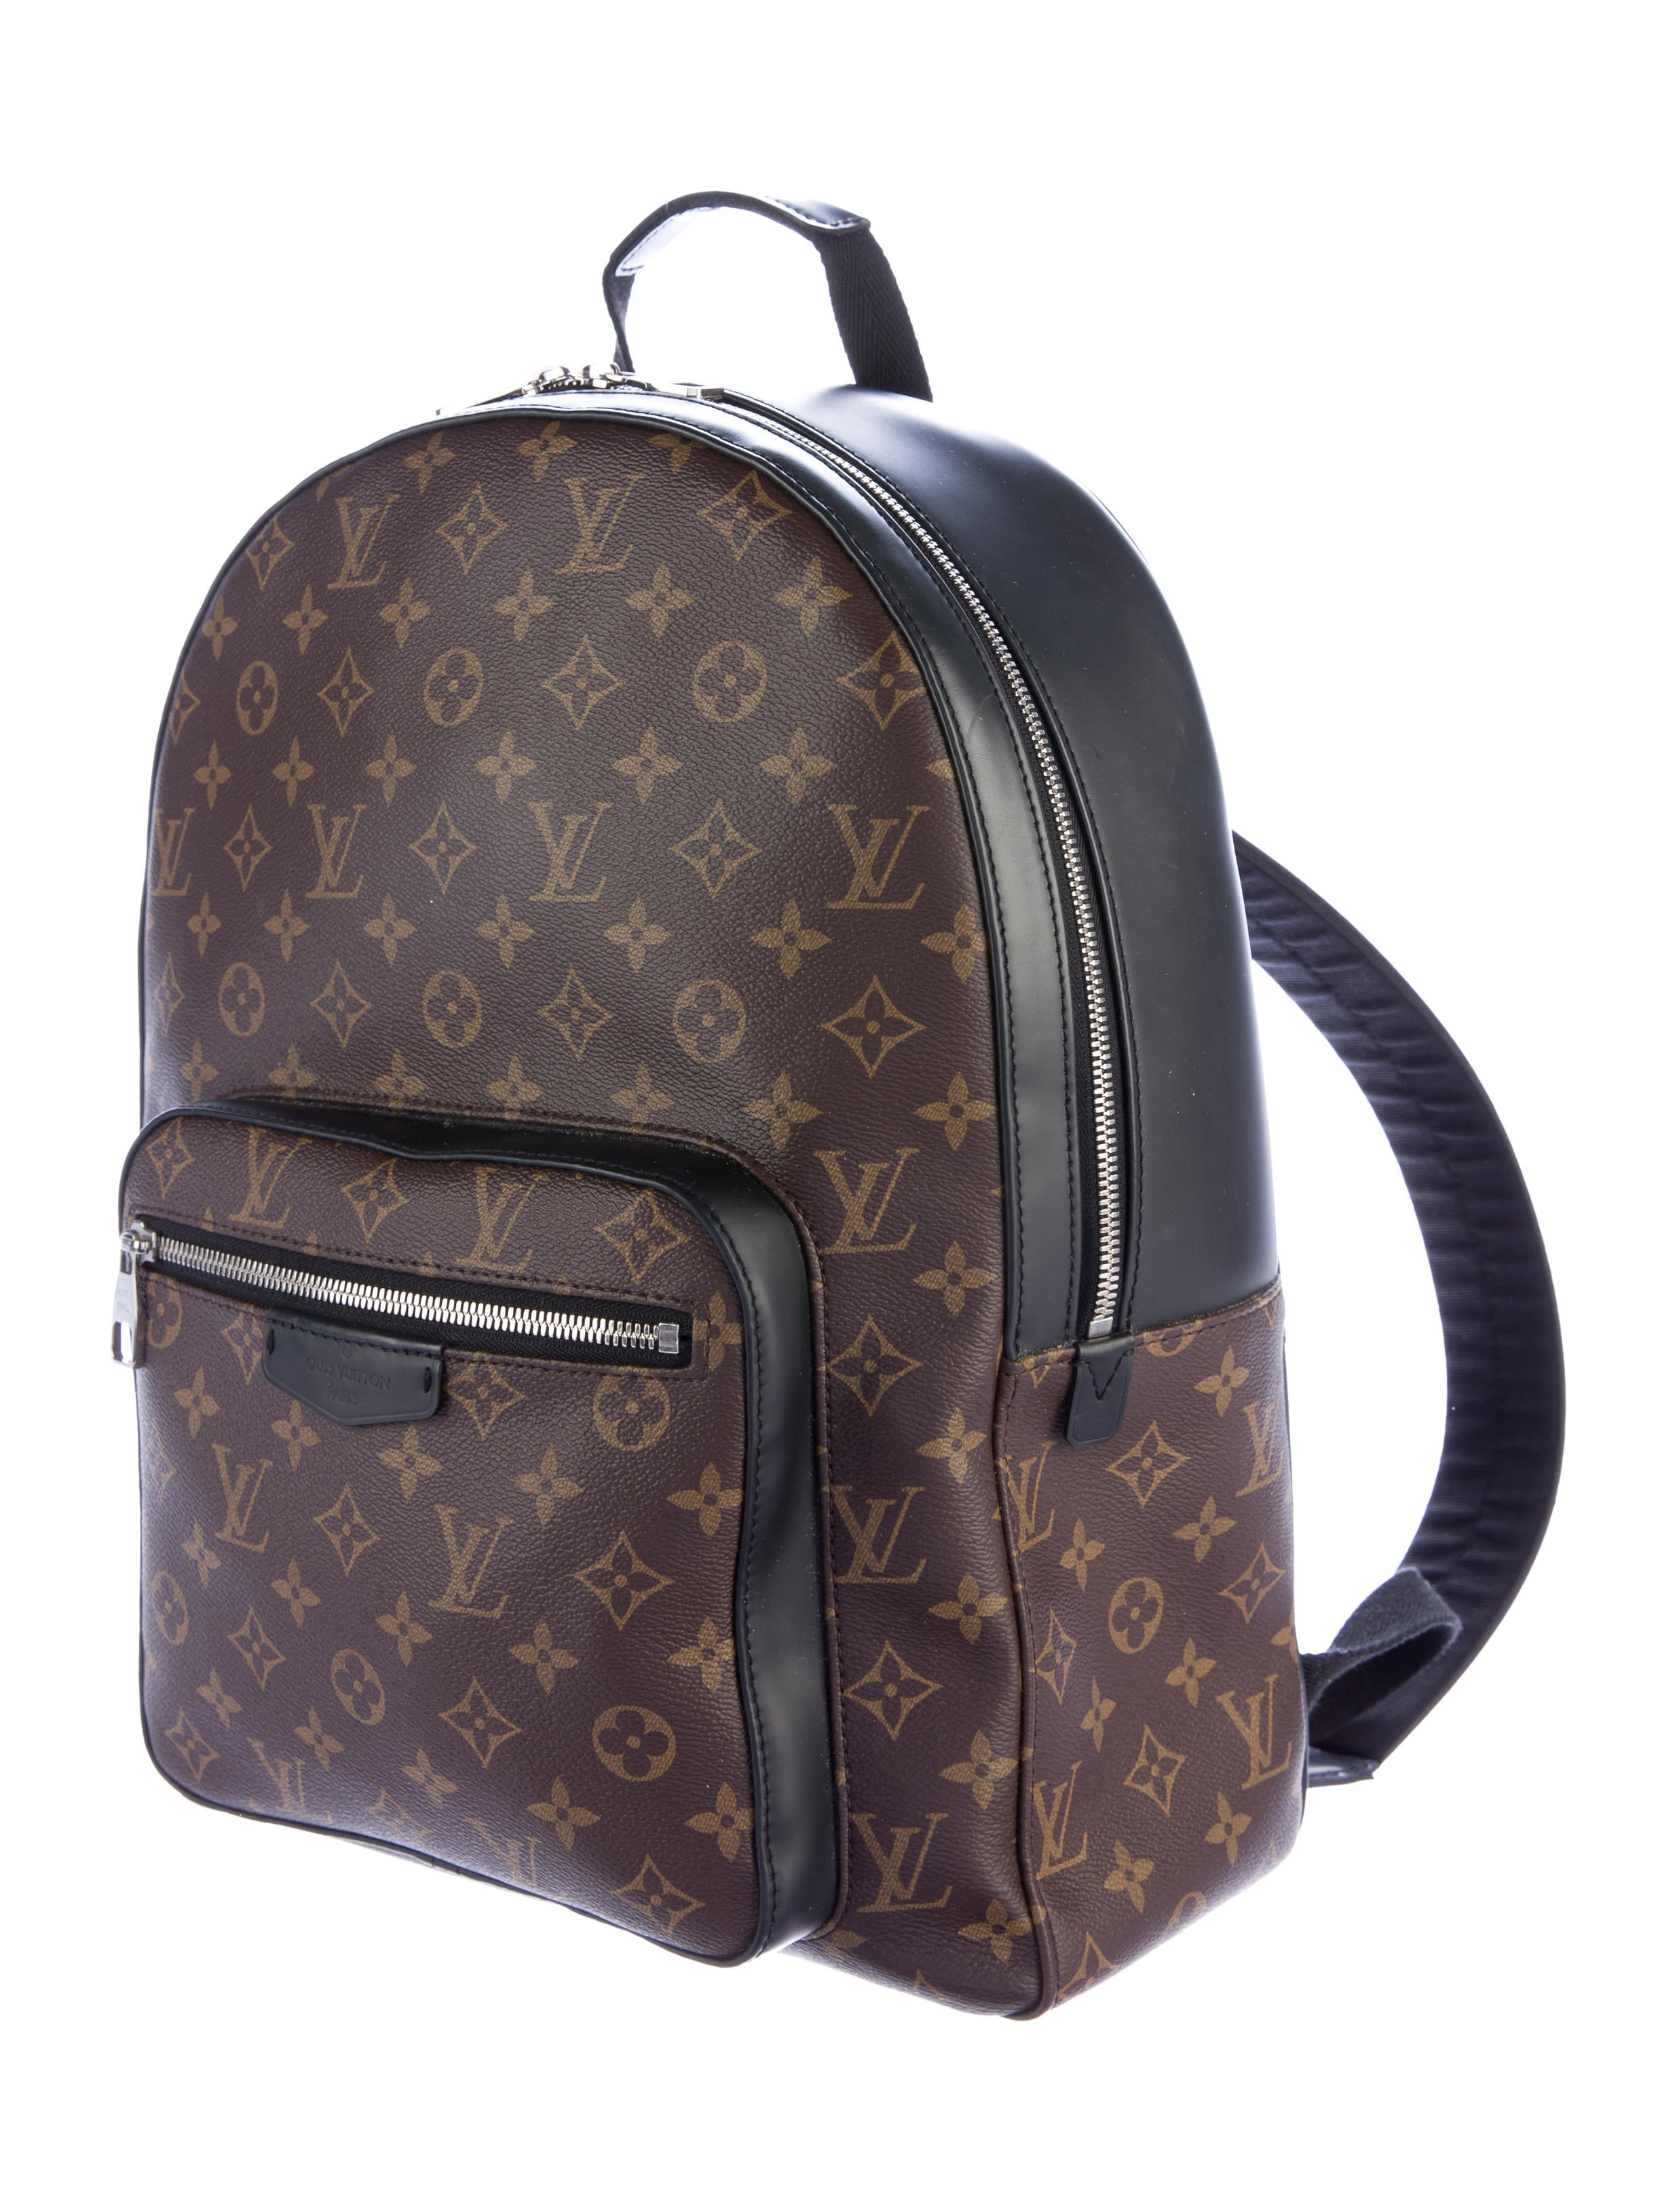 Louis Vuitton 2016 Josh Monogram Macassar Backpack